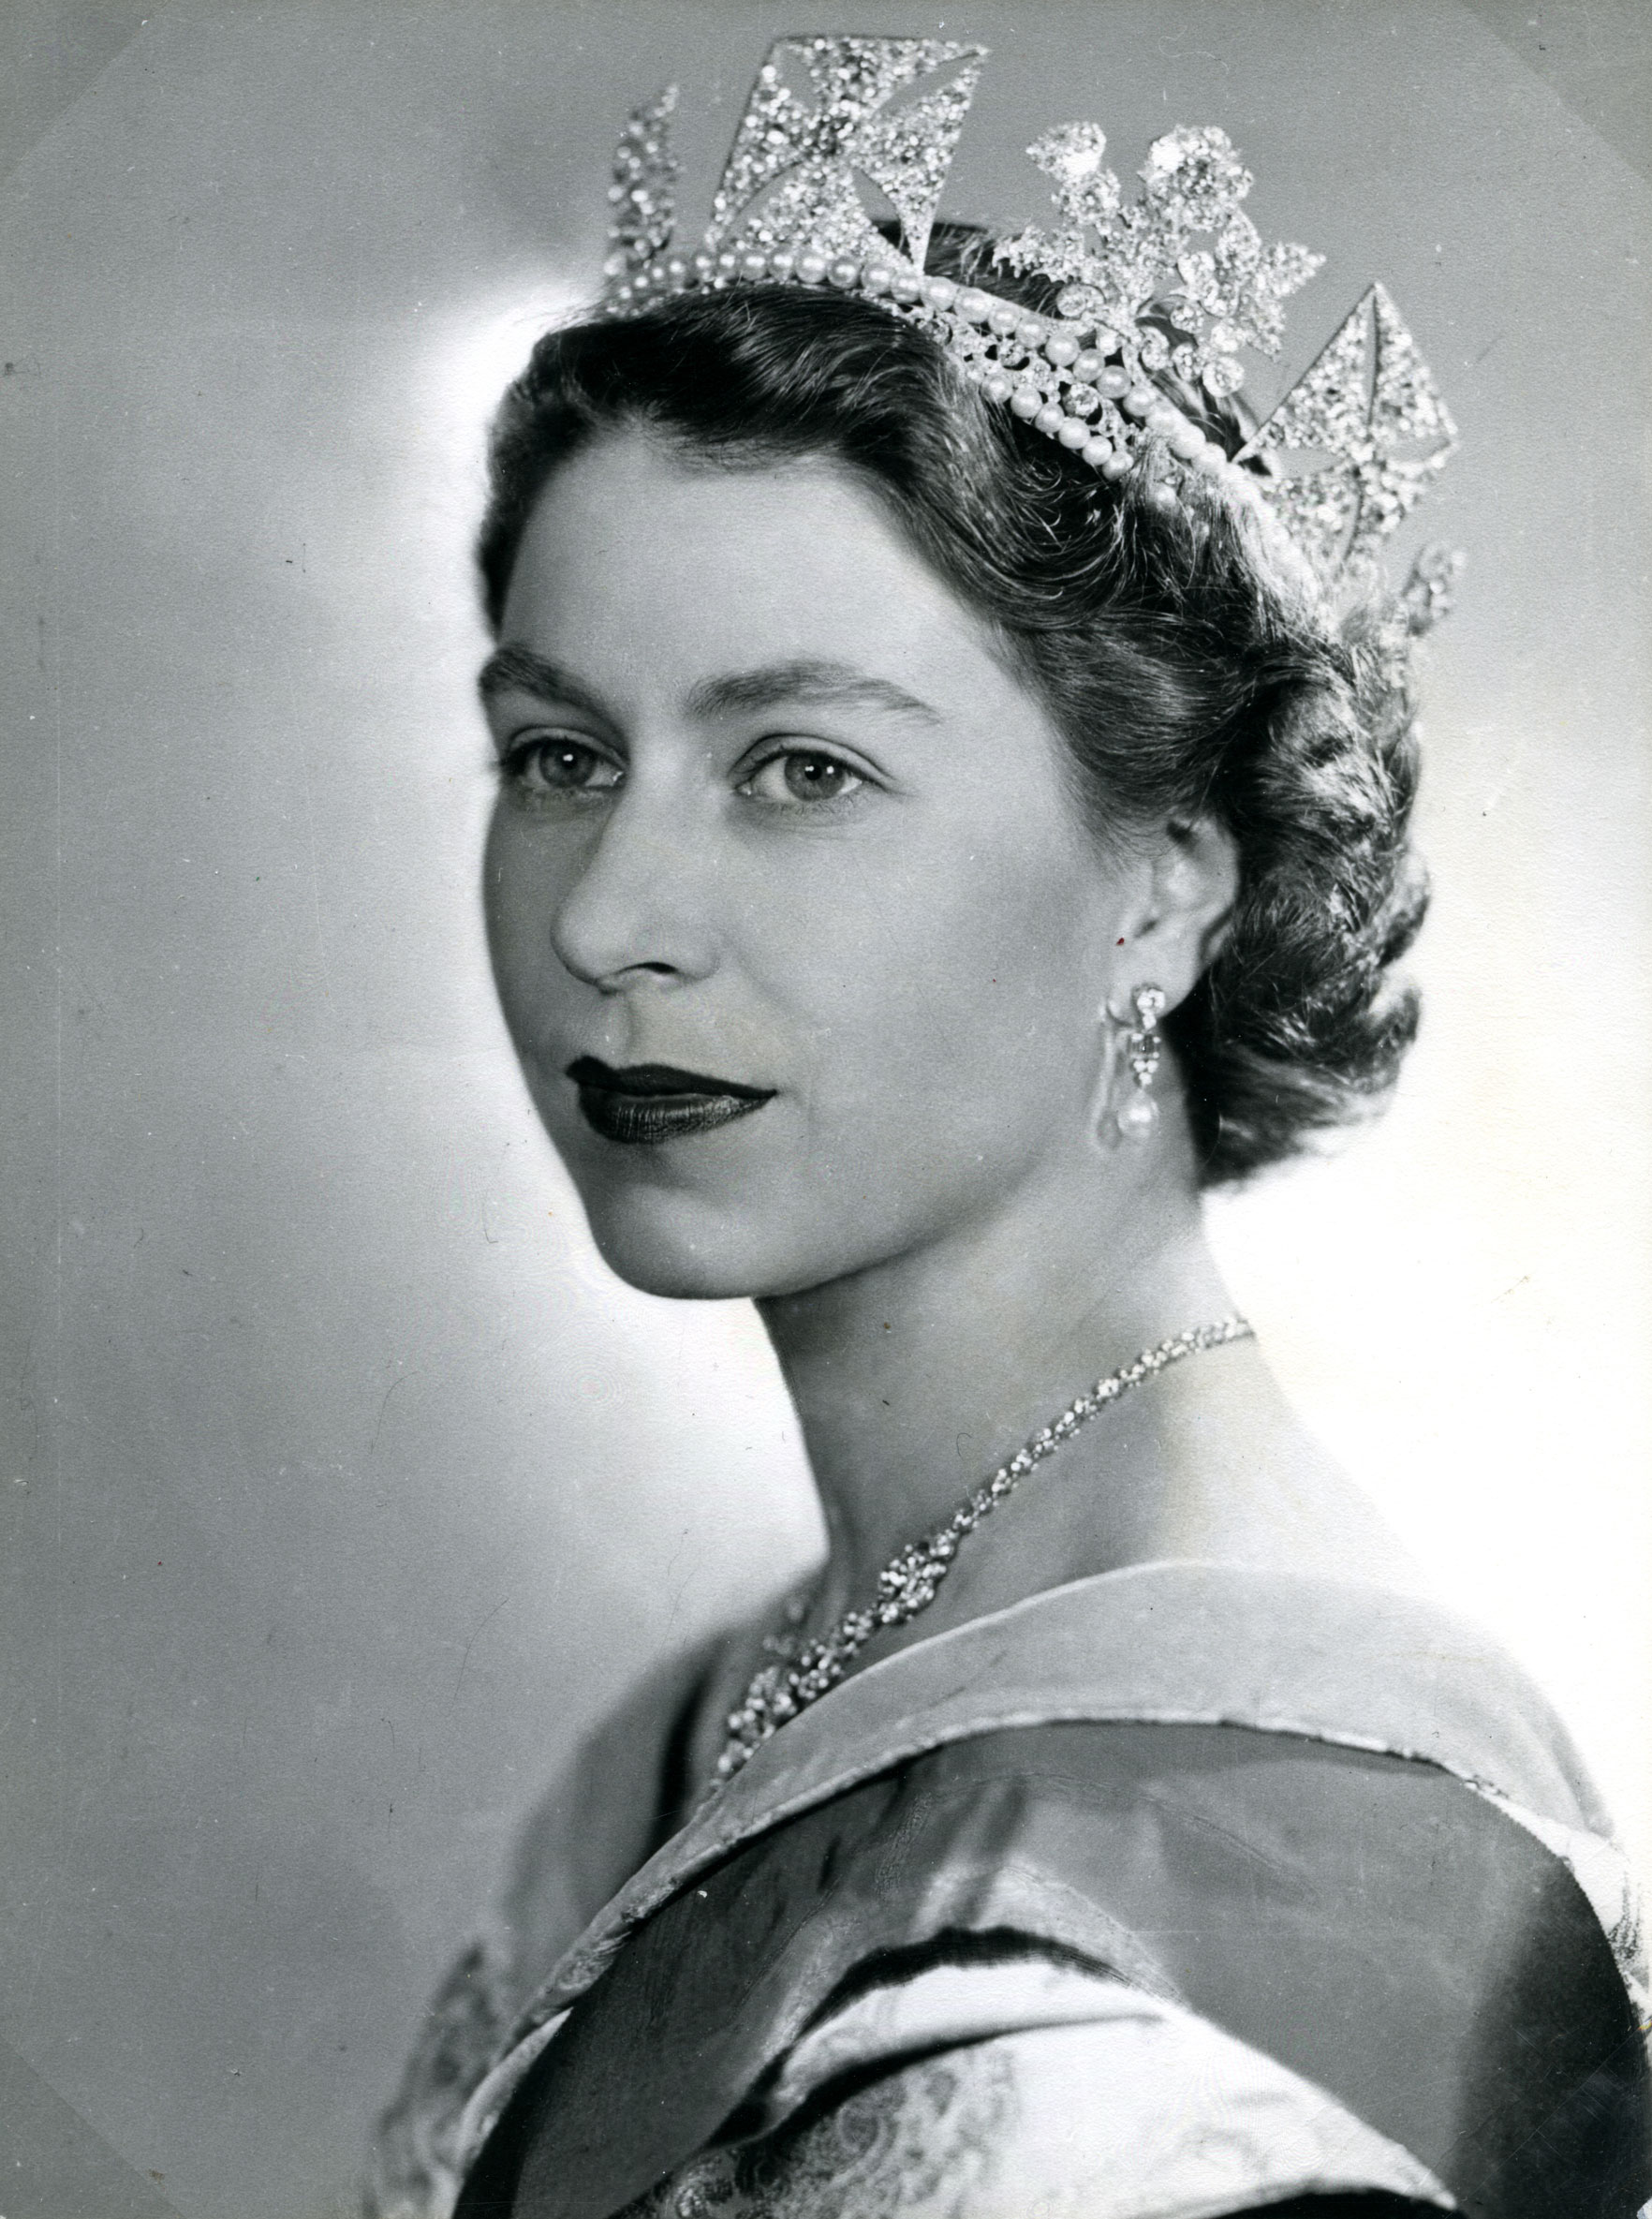 Black and white image of the Queen in three-quarter pose wearing a crown.